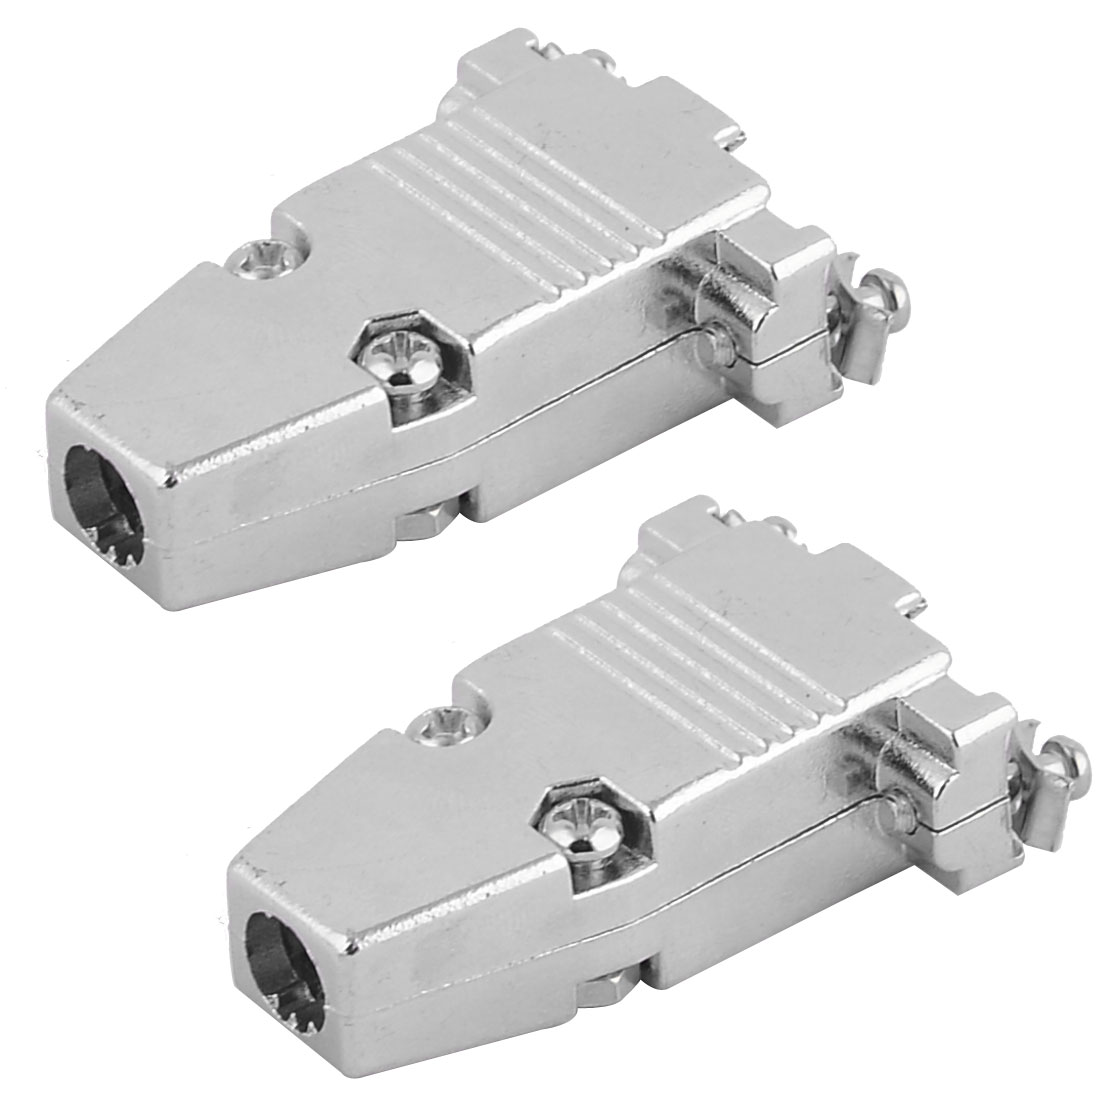 2Pcs Aluminium DB9 D-SUB Male/Female Connector Housing Backshell Shell Cover Hood Silver Tone